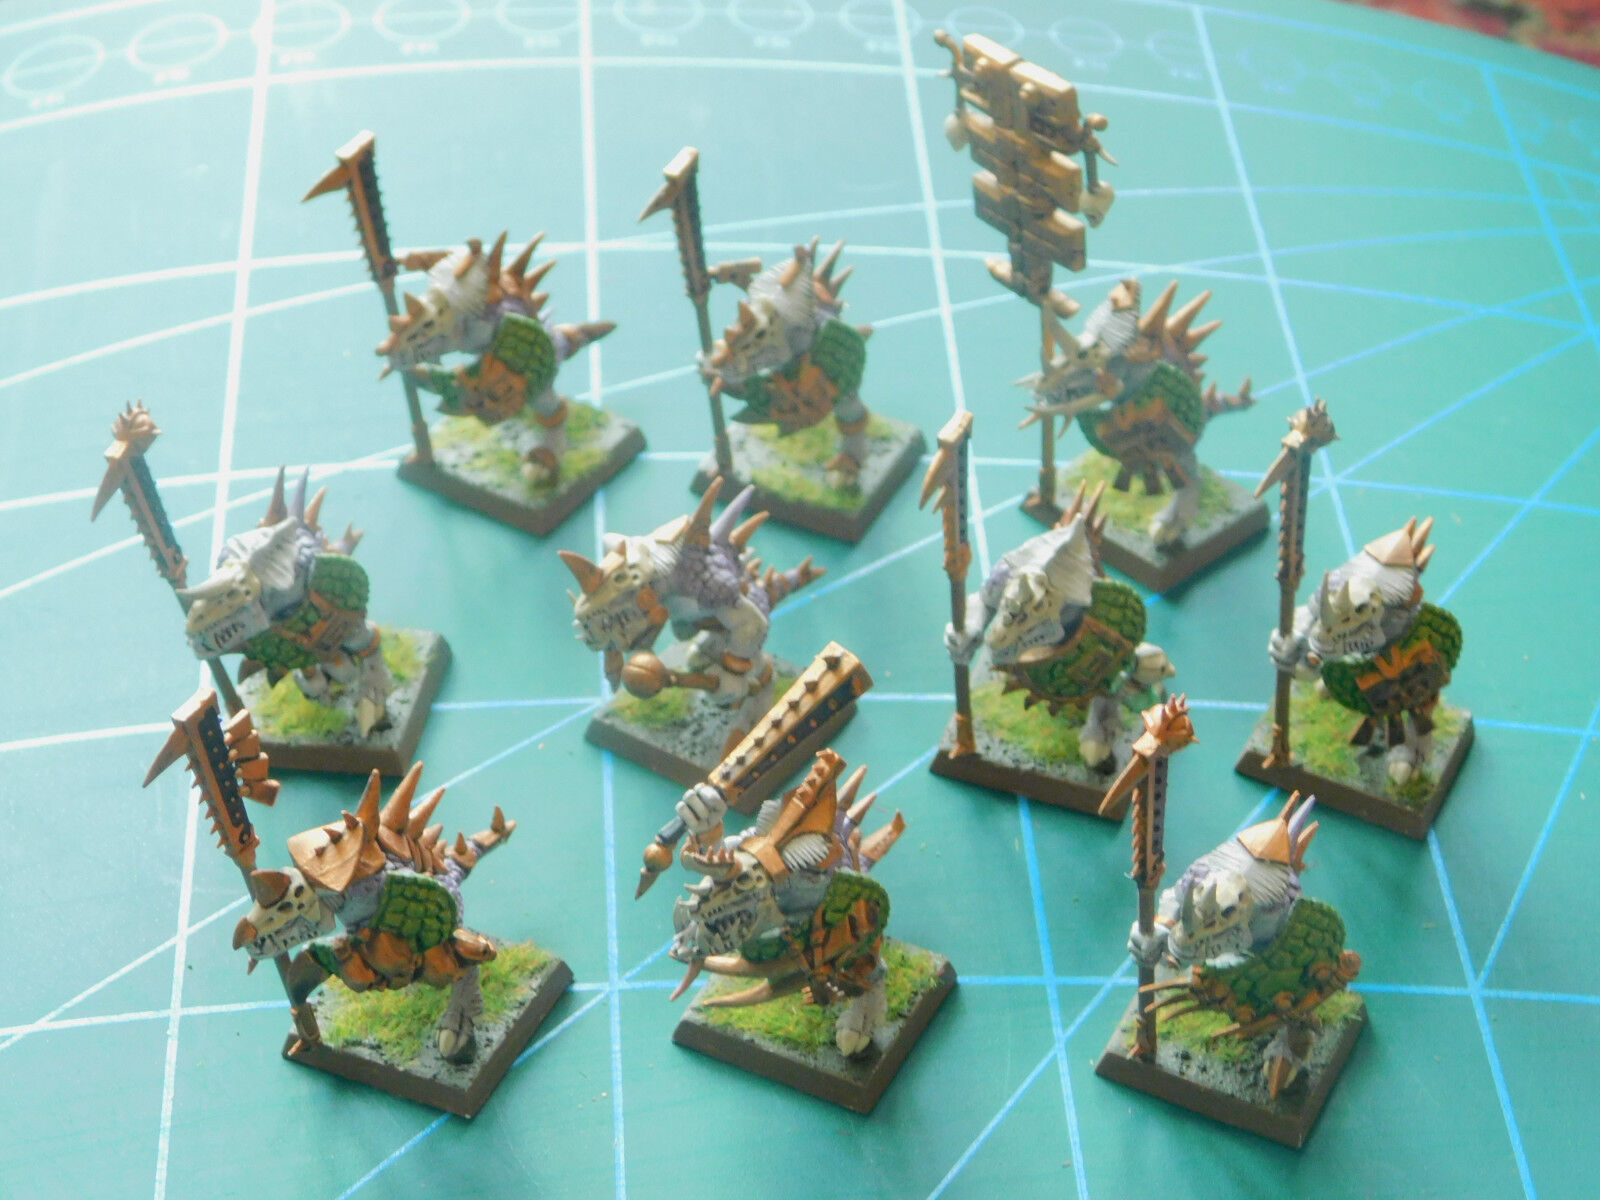 10 warhammer 40k dungeons dragons undead creature creature creature painted plastic figures aeab3a